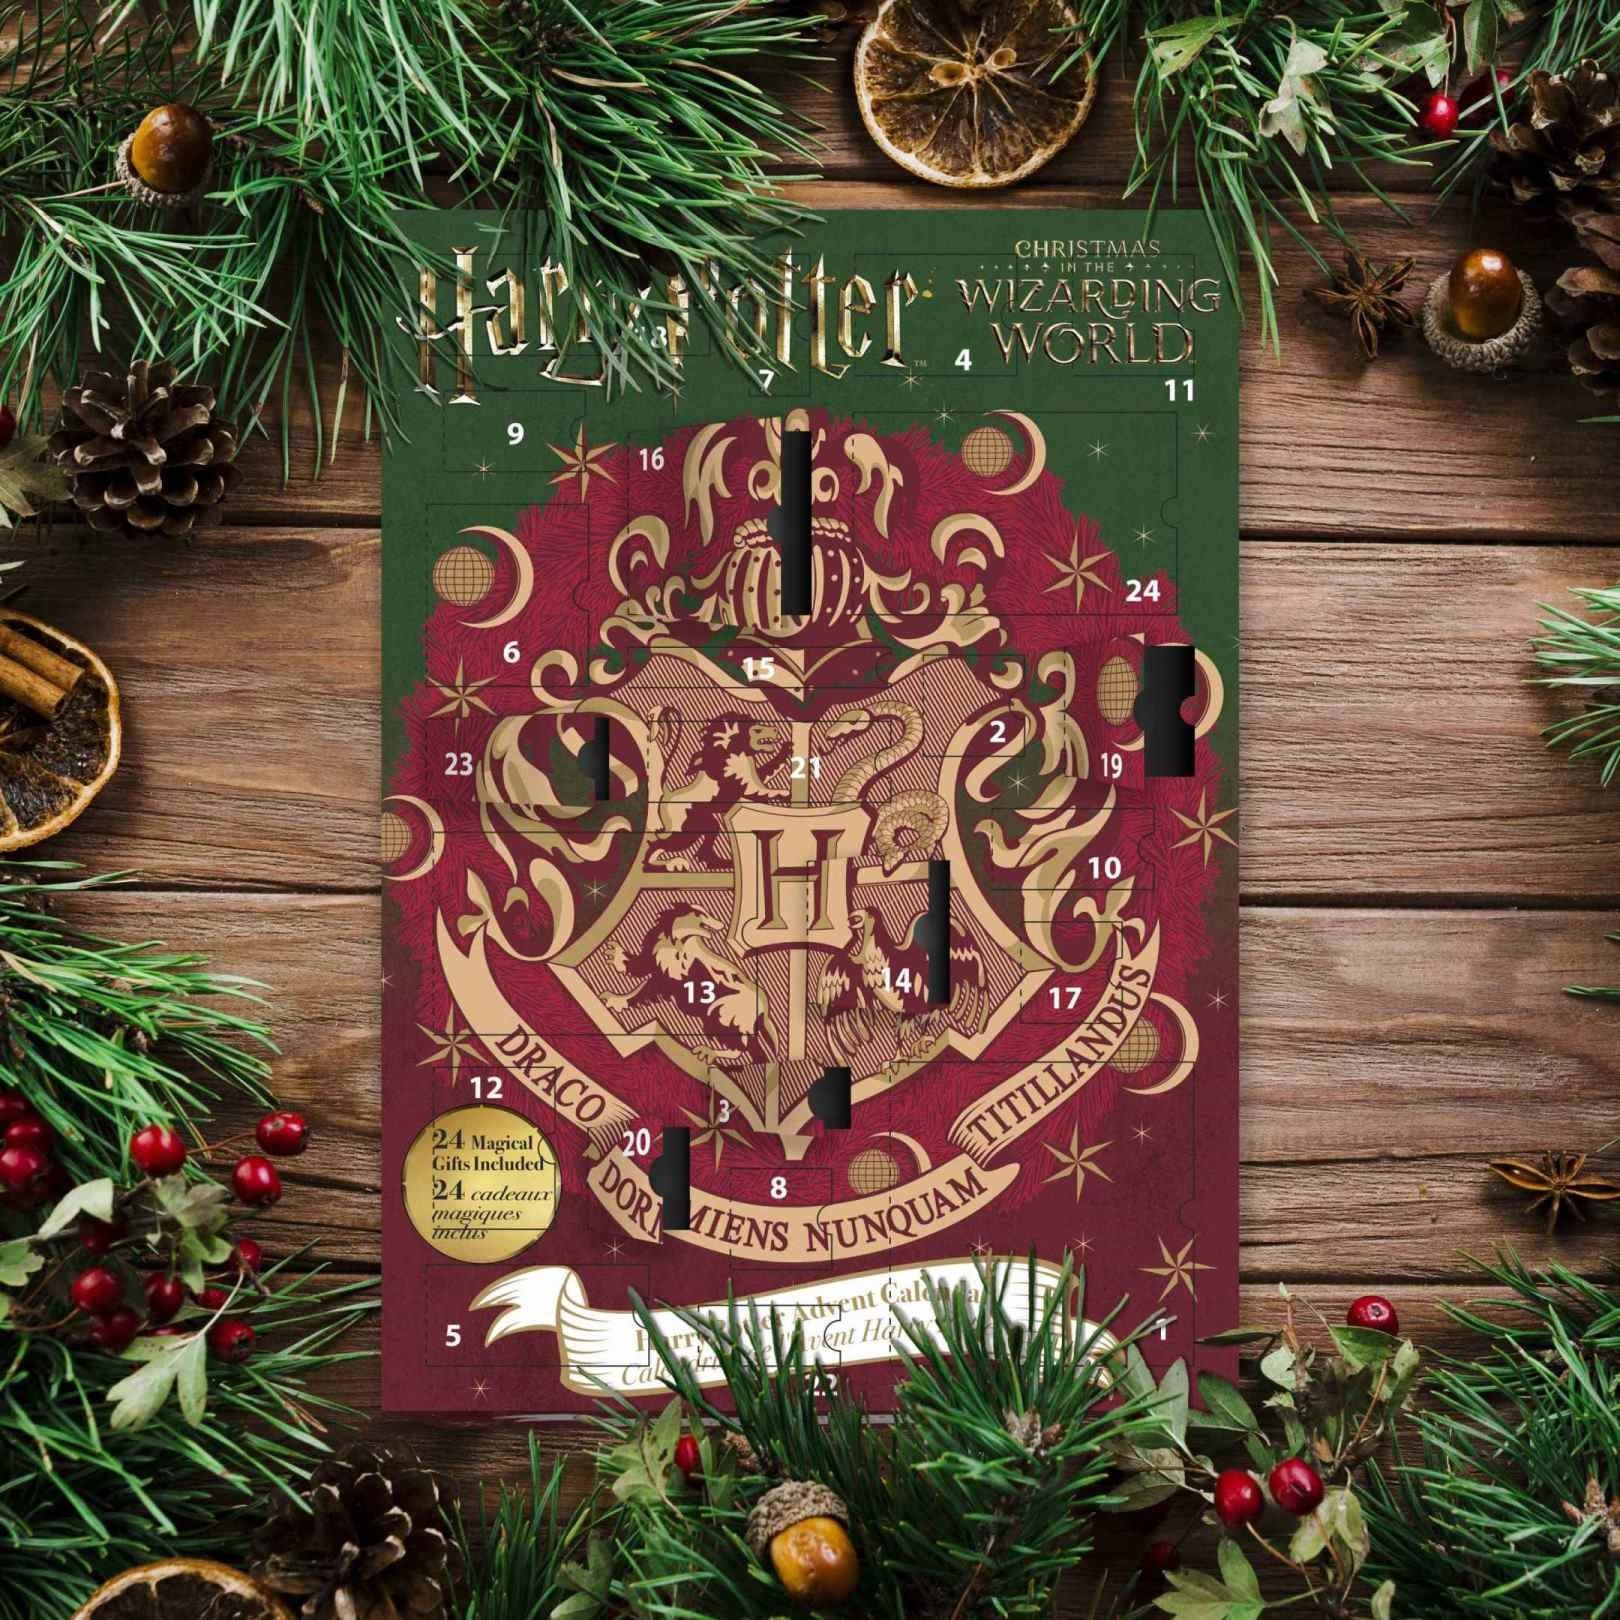 fame bros Harry Potter: Advent Calendar with 24 Gifts